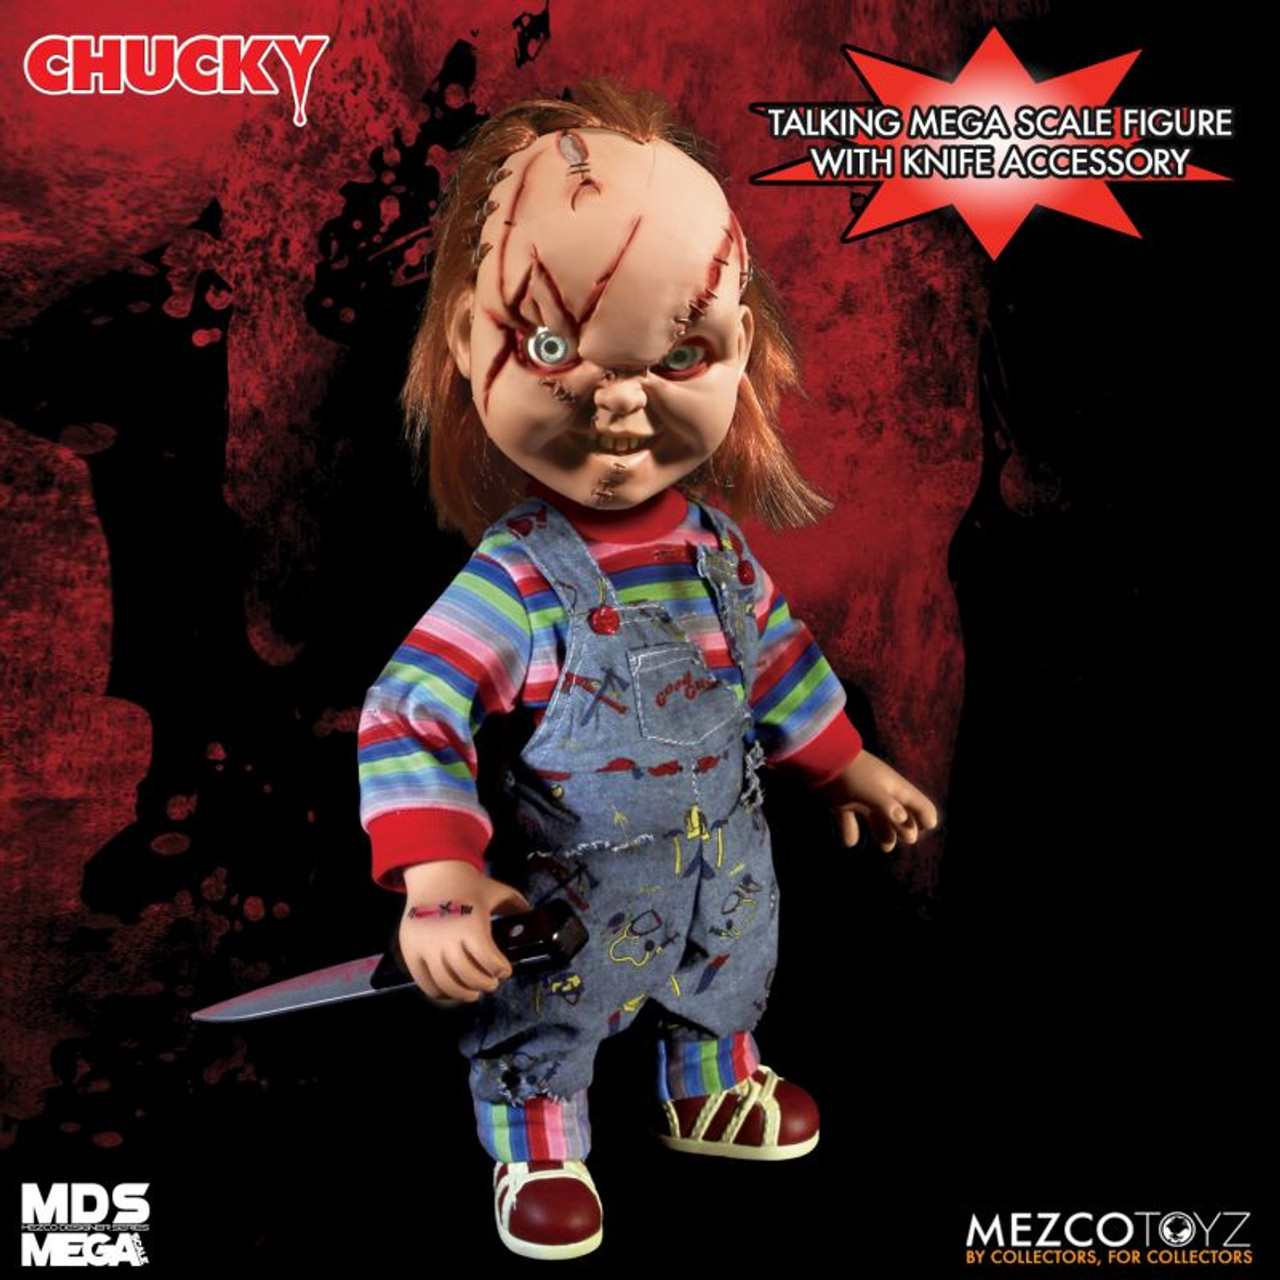 Official Child/'s Play Sneering Chucky Talking Mega-Scale 15-Inch Doll